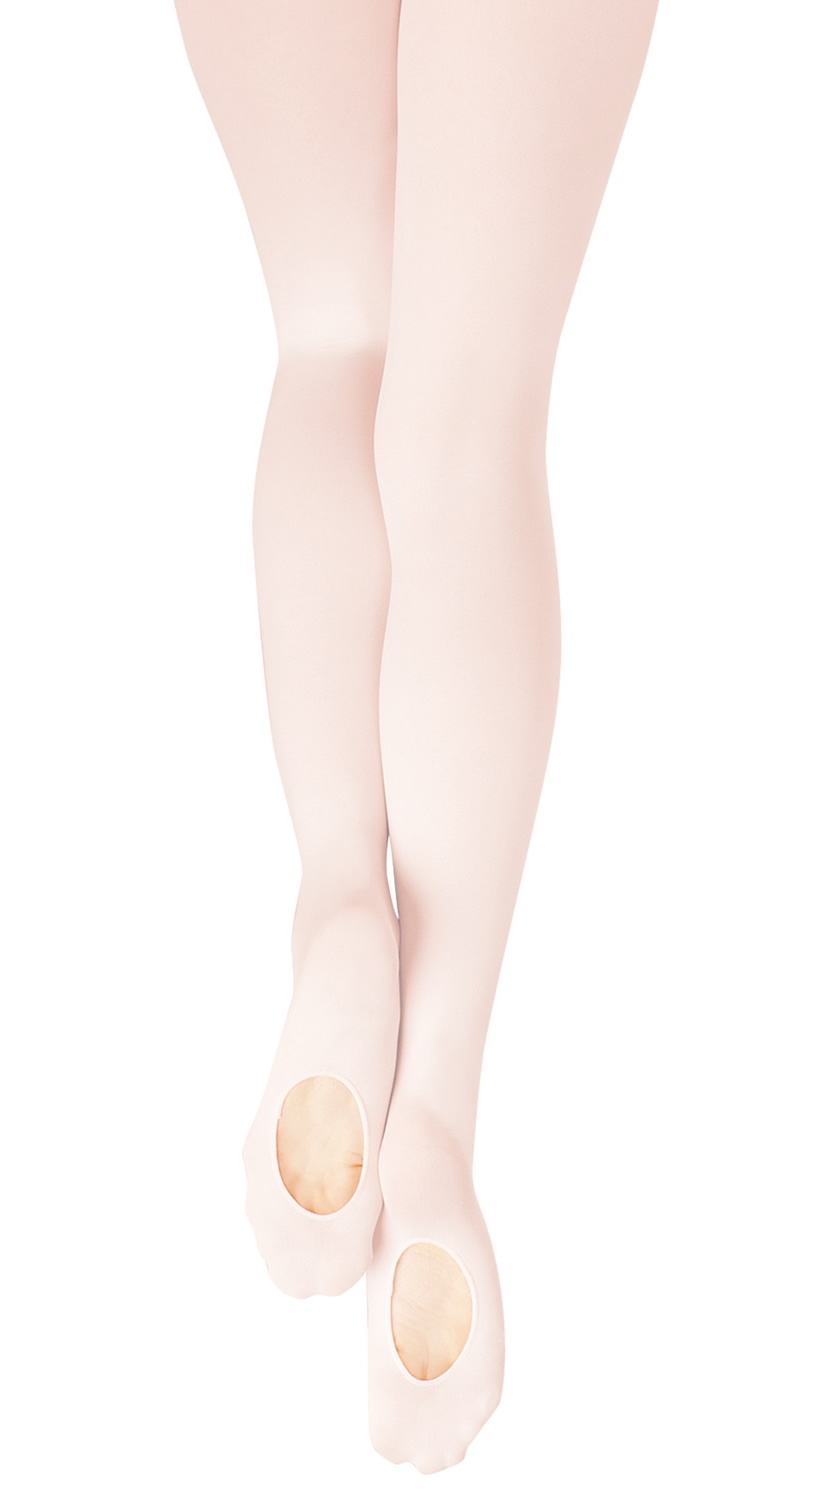 1033675fb889d TIGHTS, Capezio, Ultra Soft Self Knit Waistband Transition Tight 1916,  $14.95, from VEdance, the very best in ballroom and Latin dance shoes and  dancewear.